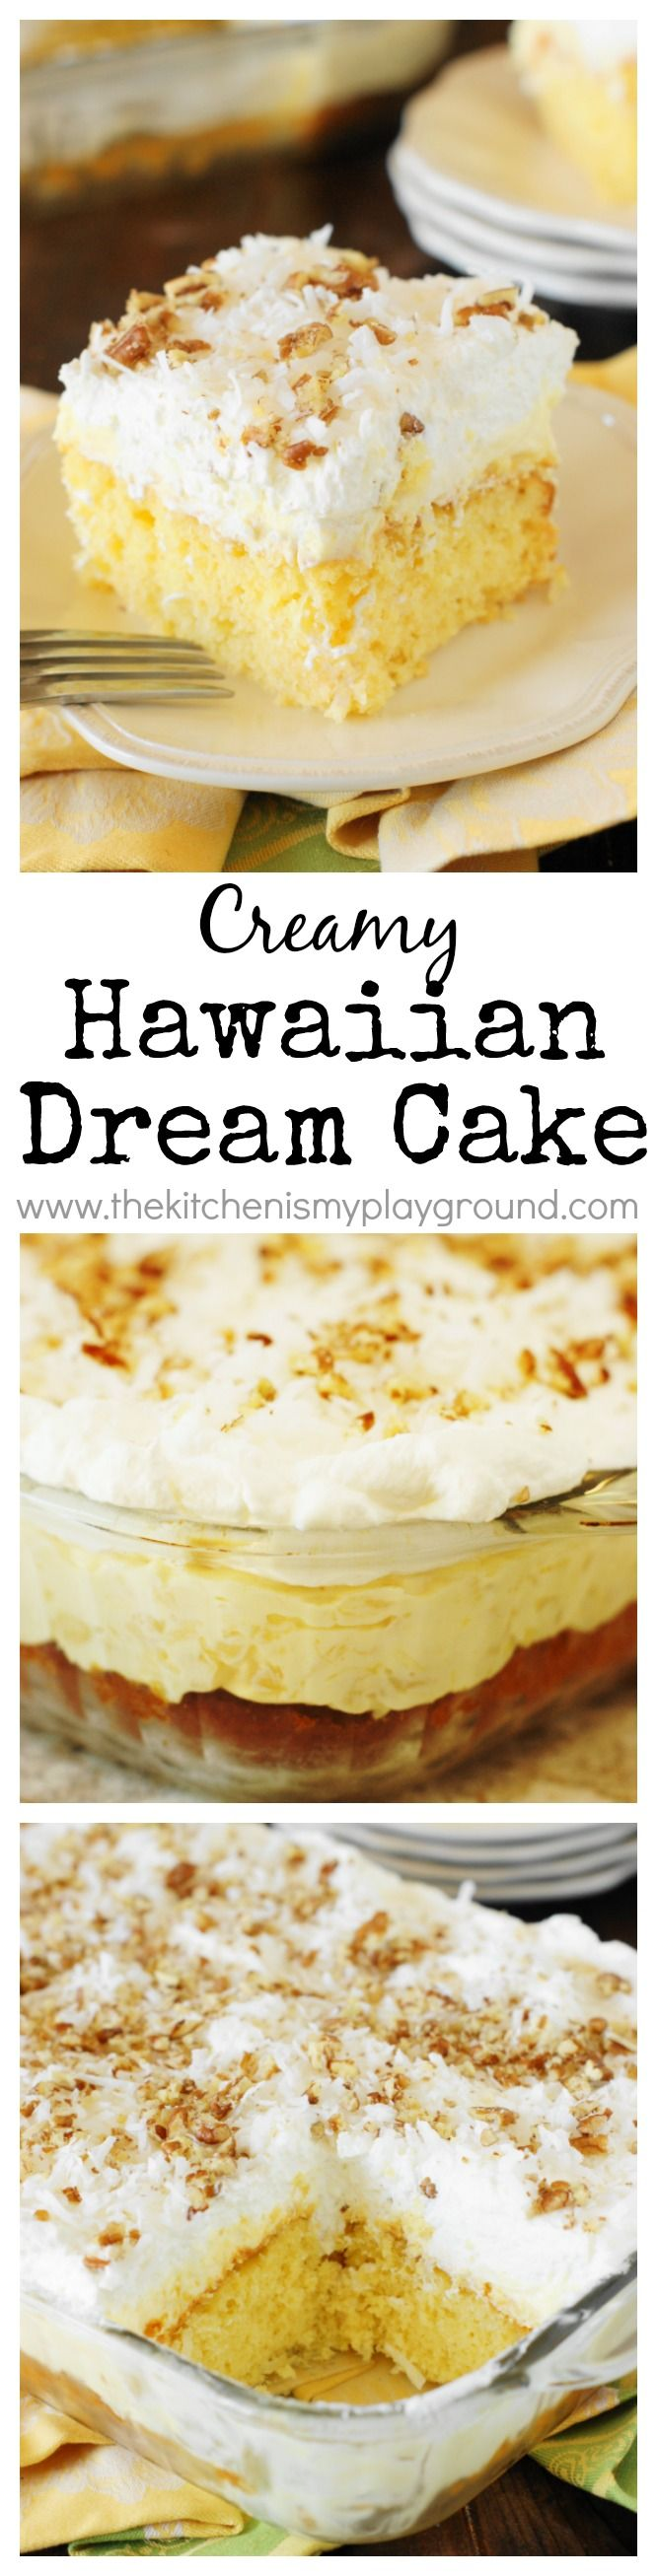 Hawaiian Dream Cake ~ a layered delight with pineapple-and-coconut laced yellow cake base, layer of creamy pineapple pudding, and freshly whipped cream and coconut topping.  Cool, creamy, & comforting!   #ad www.thekitchenism...